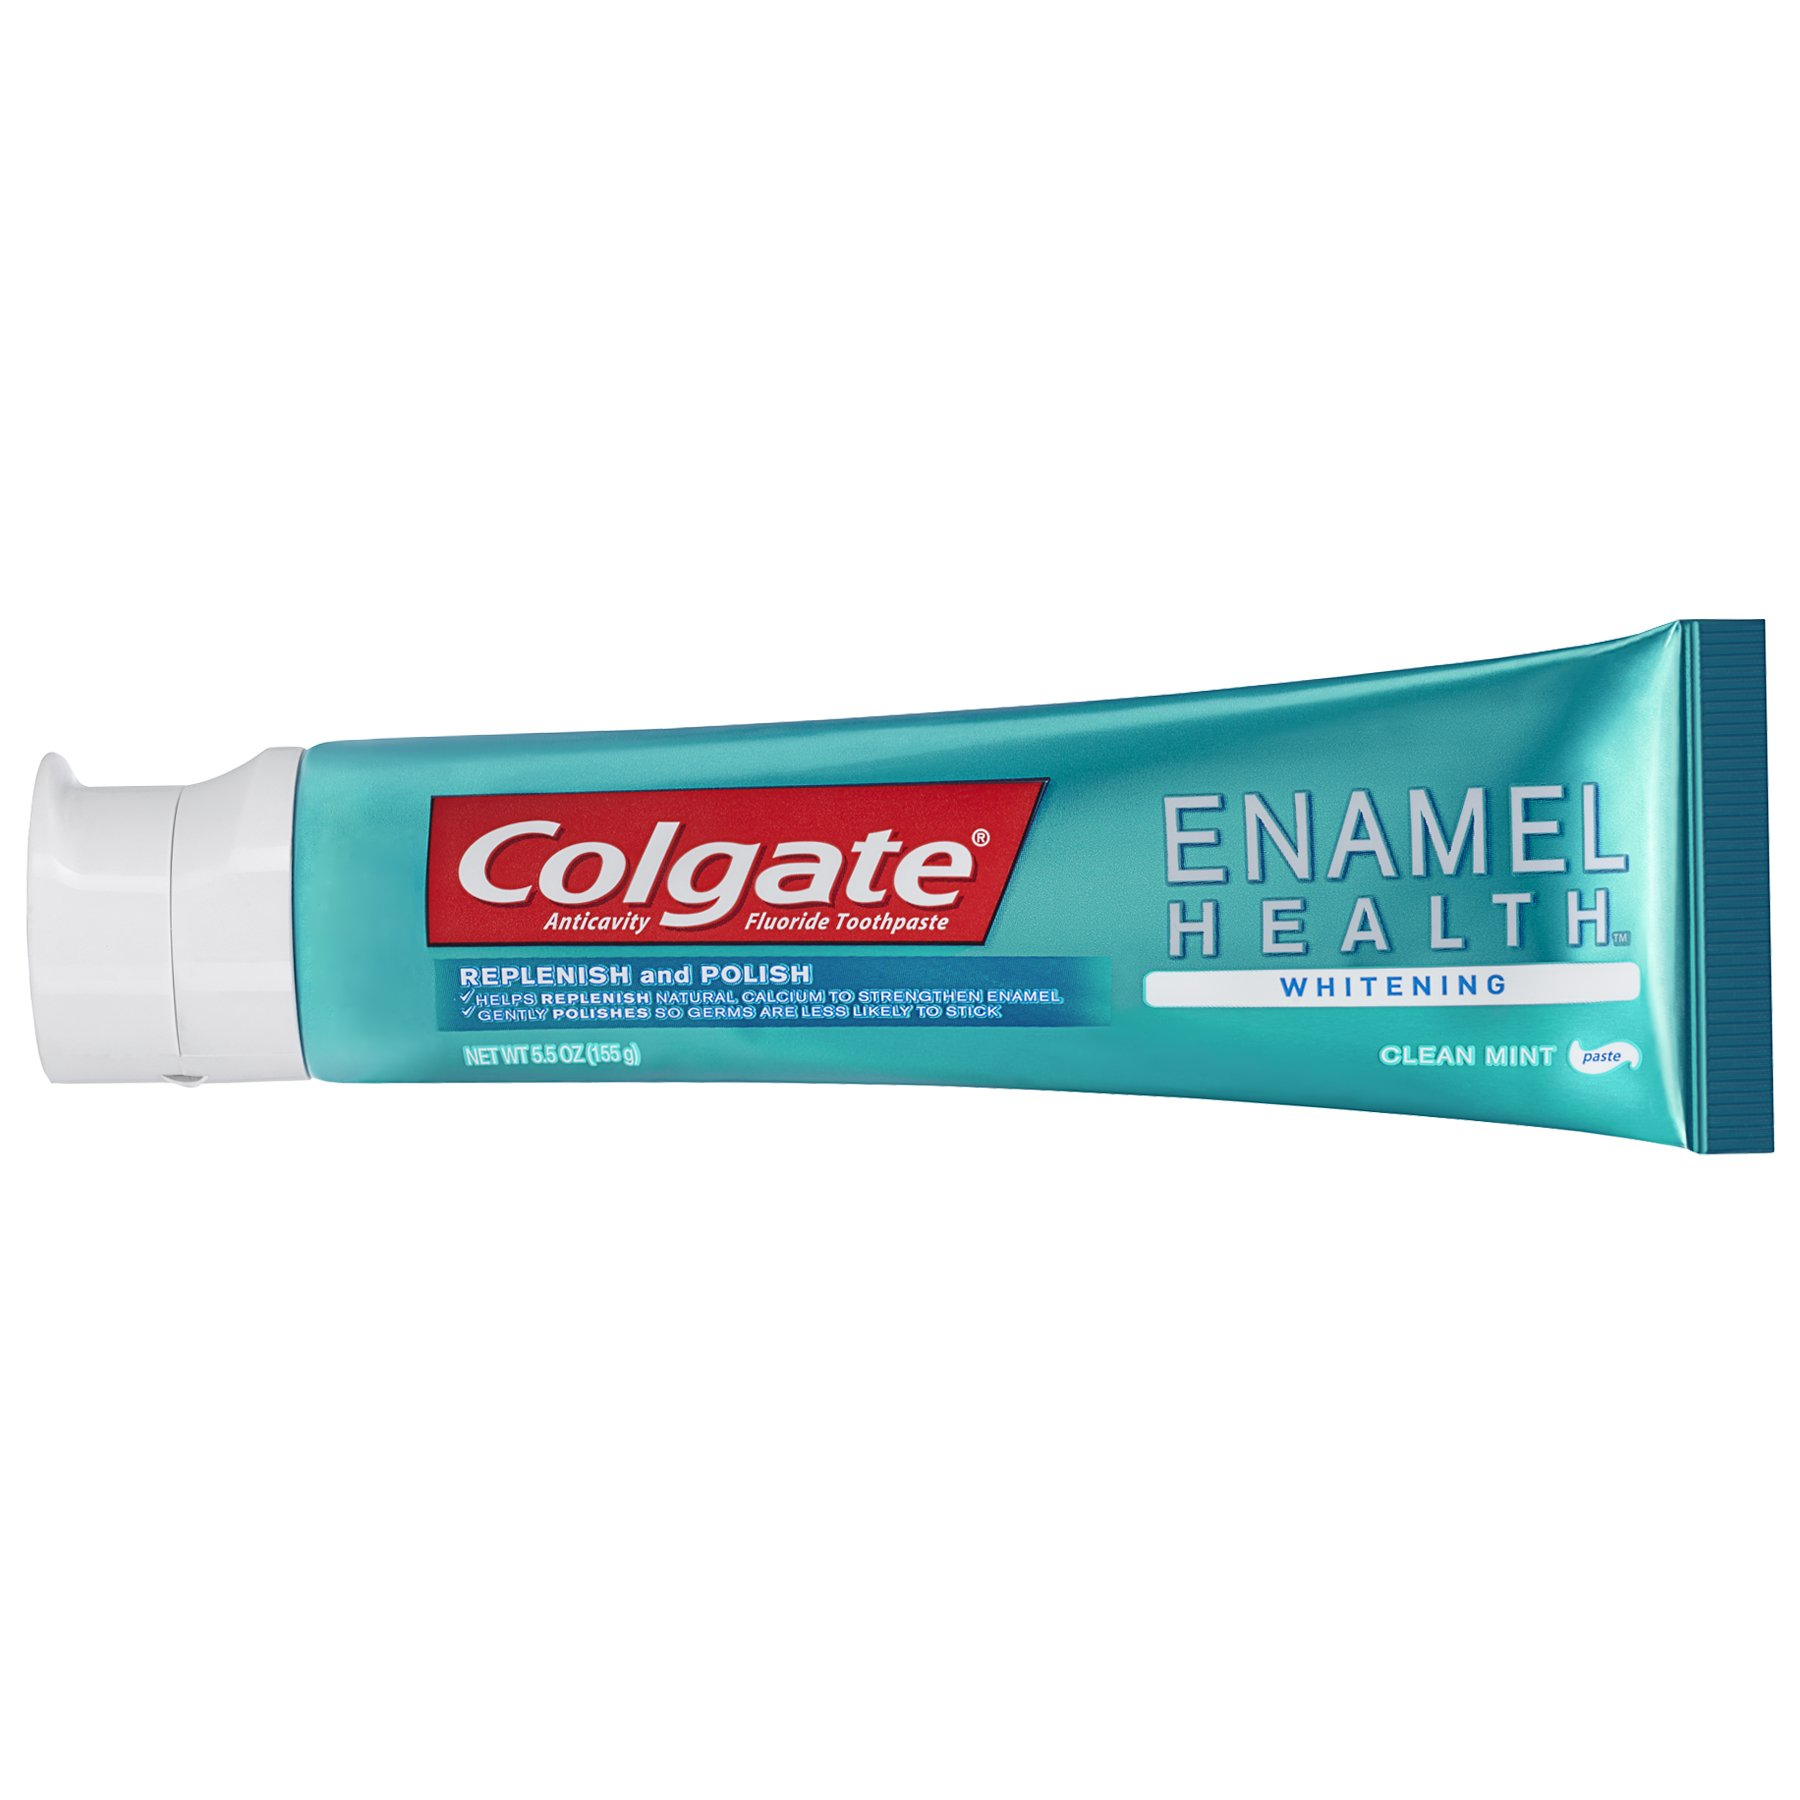 Colgate Enamel Health Whitening Toothpaste - 5.5 ounce (3 Pack) by Colgate (Image #3)